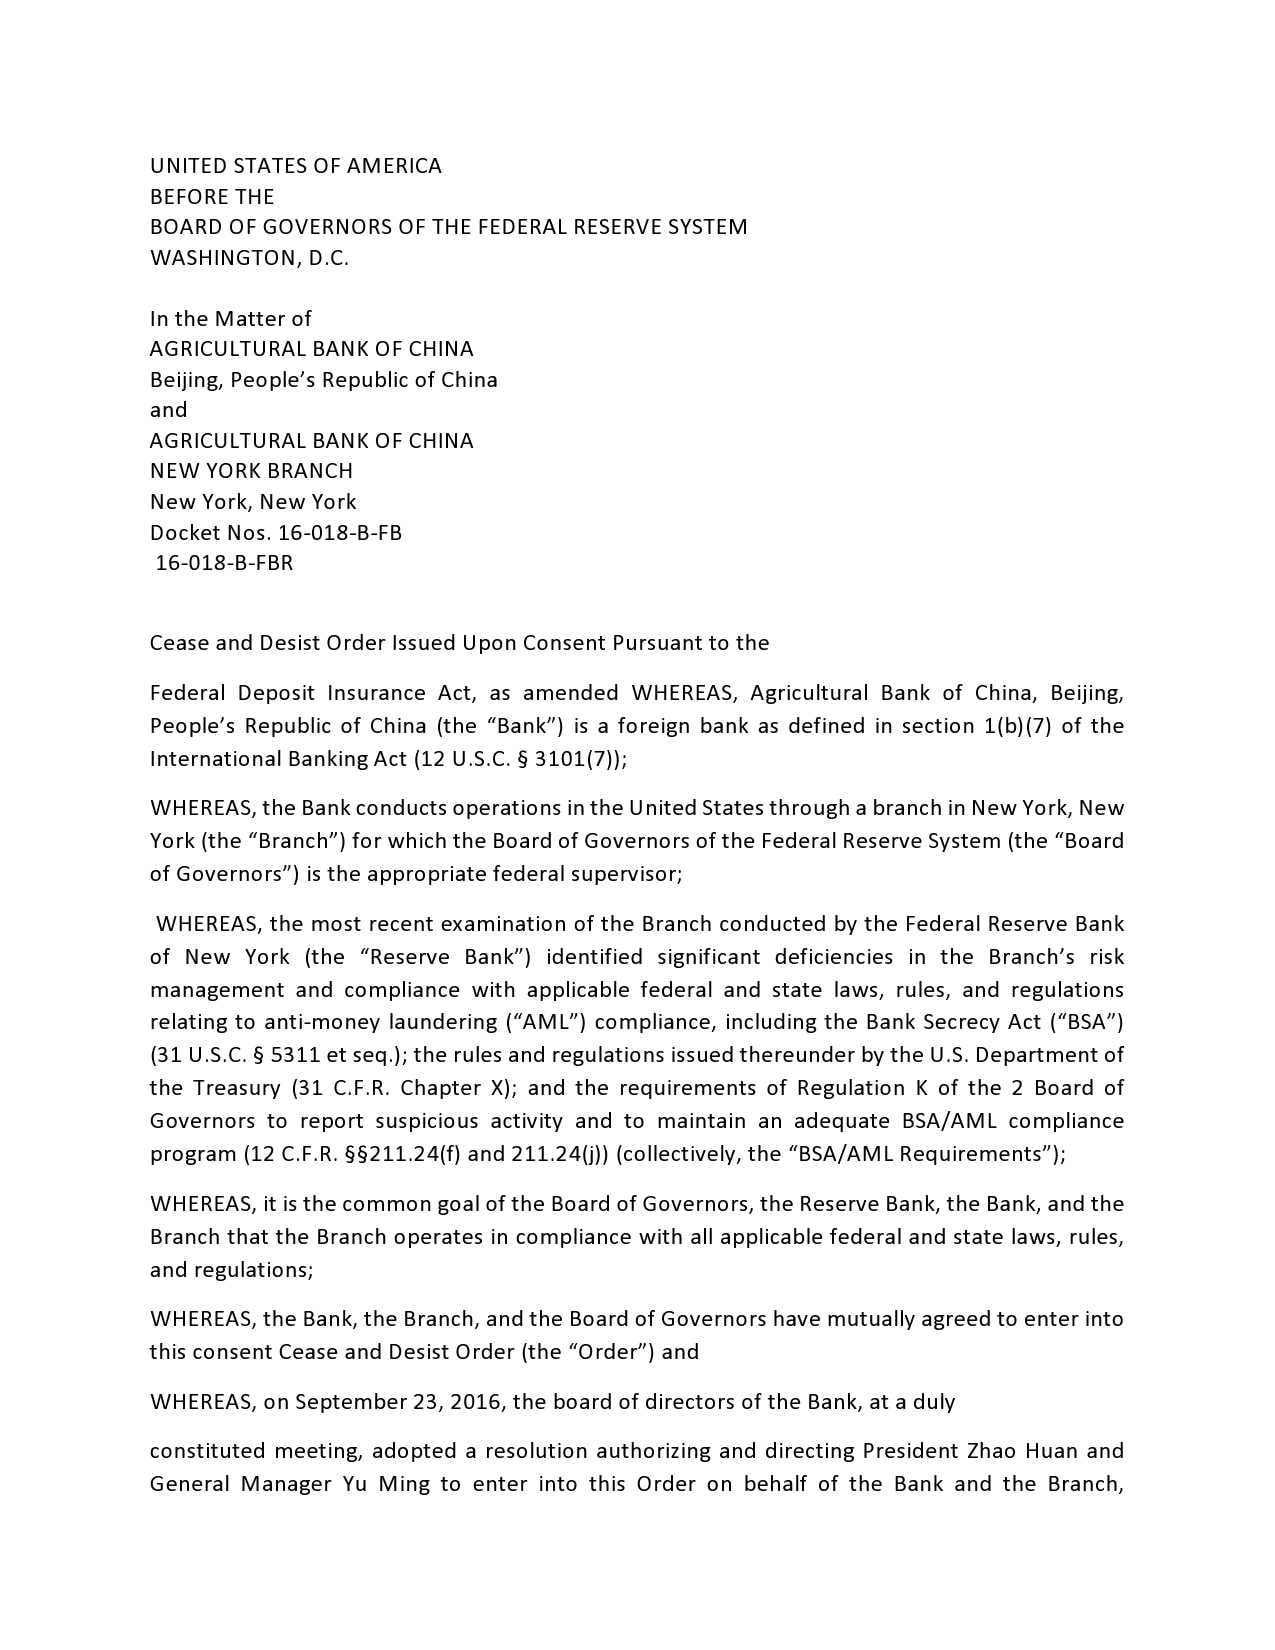 cease and desist letter template 26